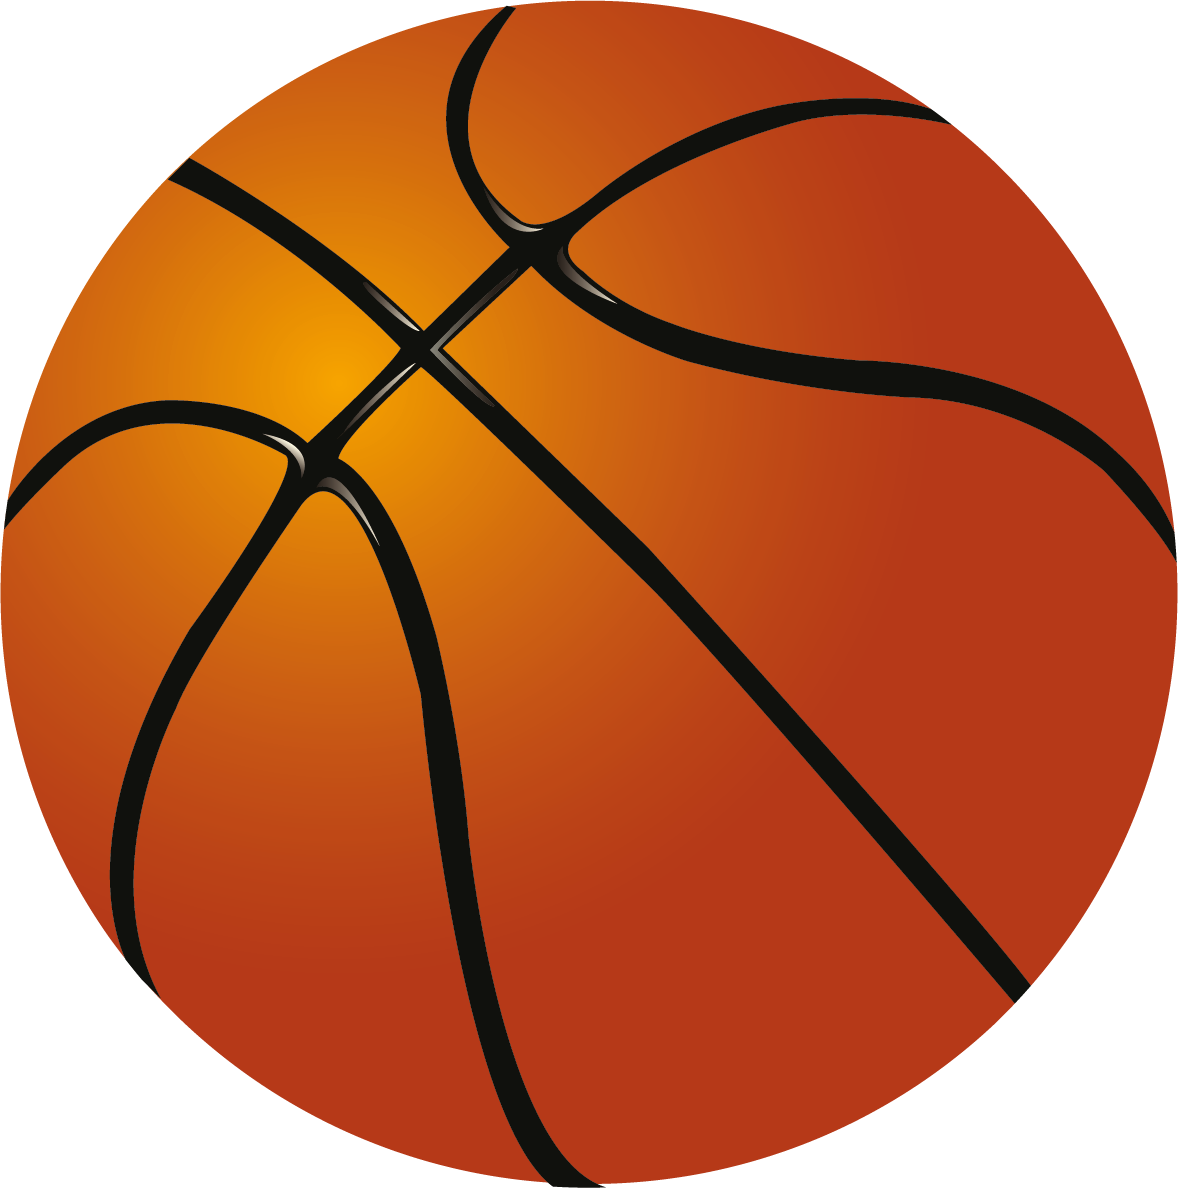 Female basketball clipart image royalty free stock ball - Buscar con Google | Niños | Pinterest | Basketball clipart ... image royalty free stock